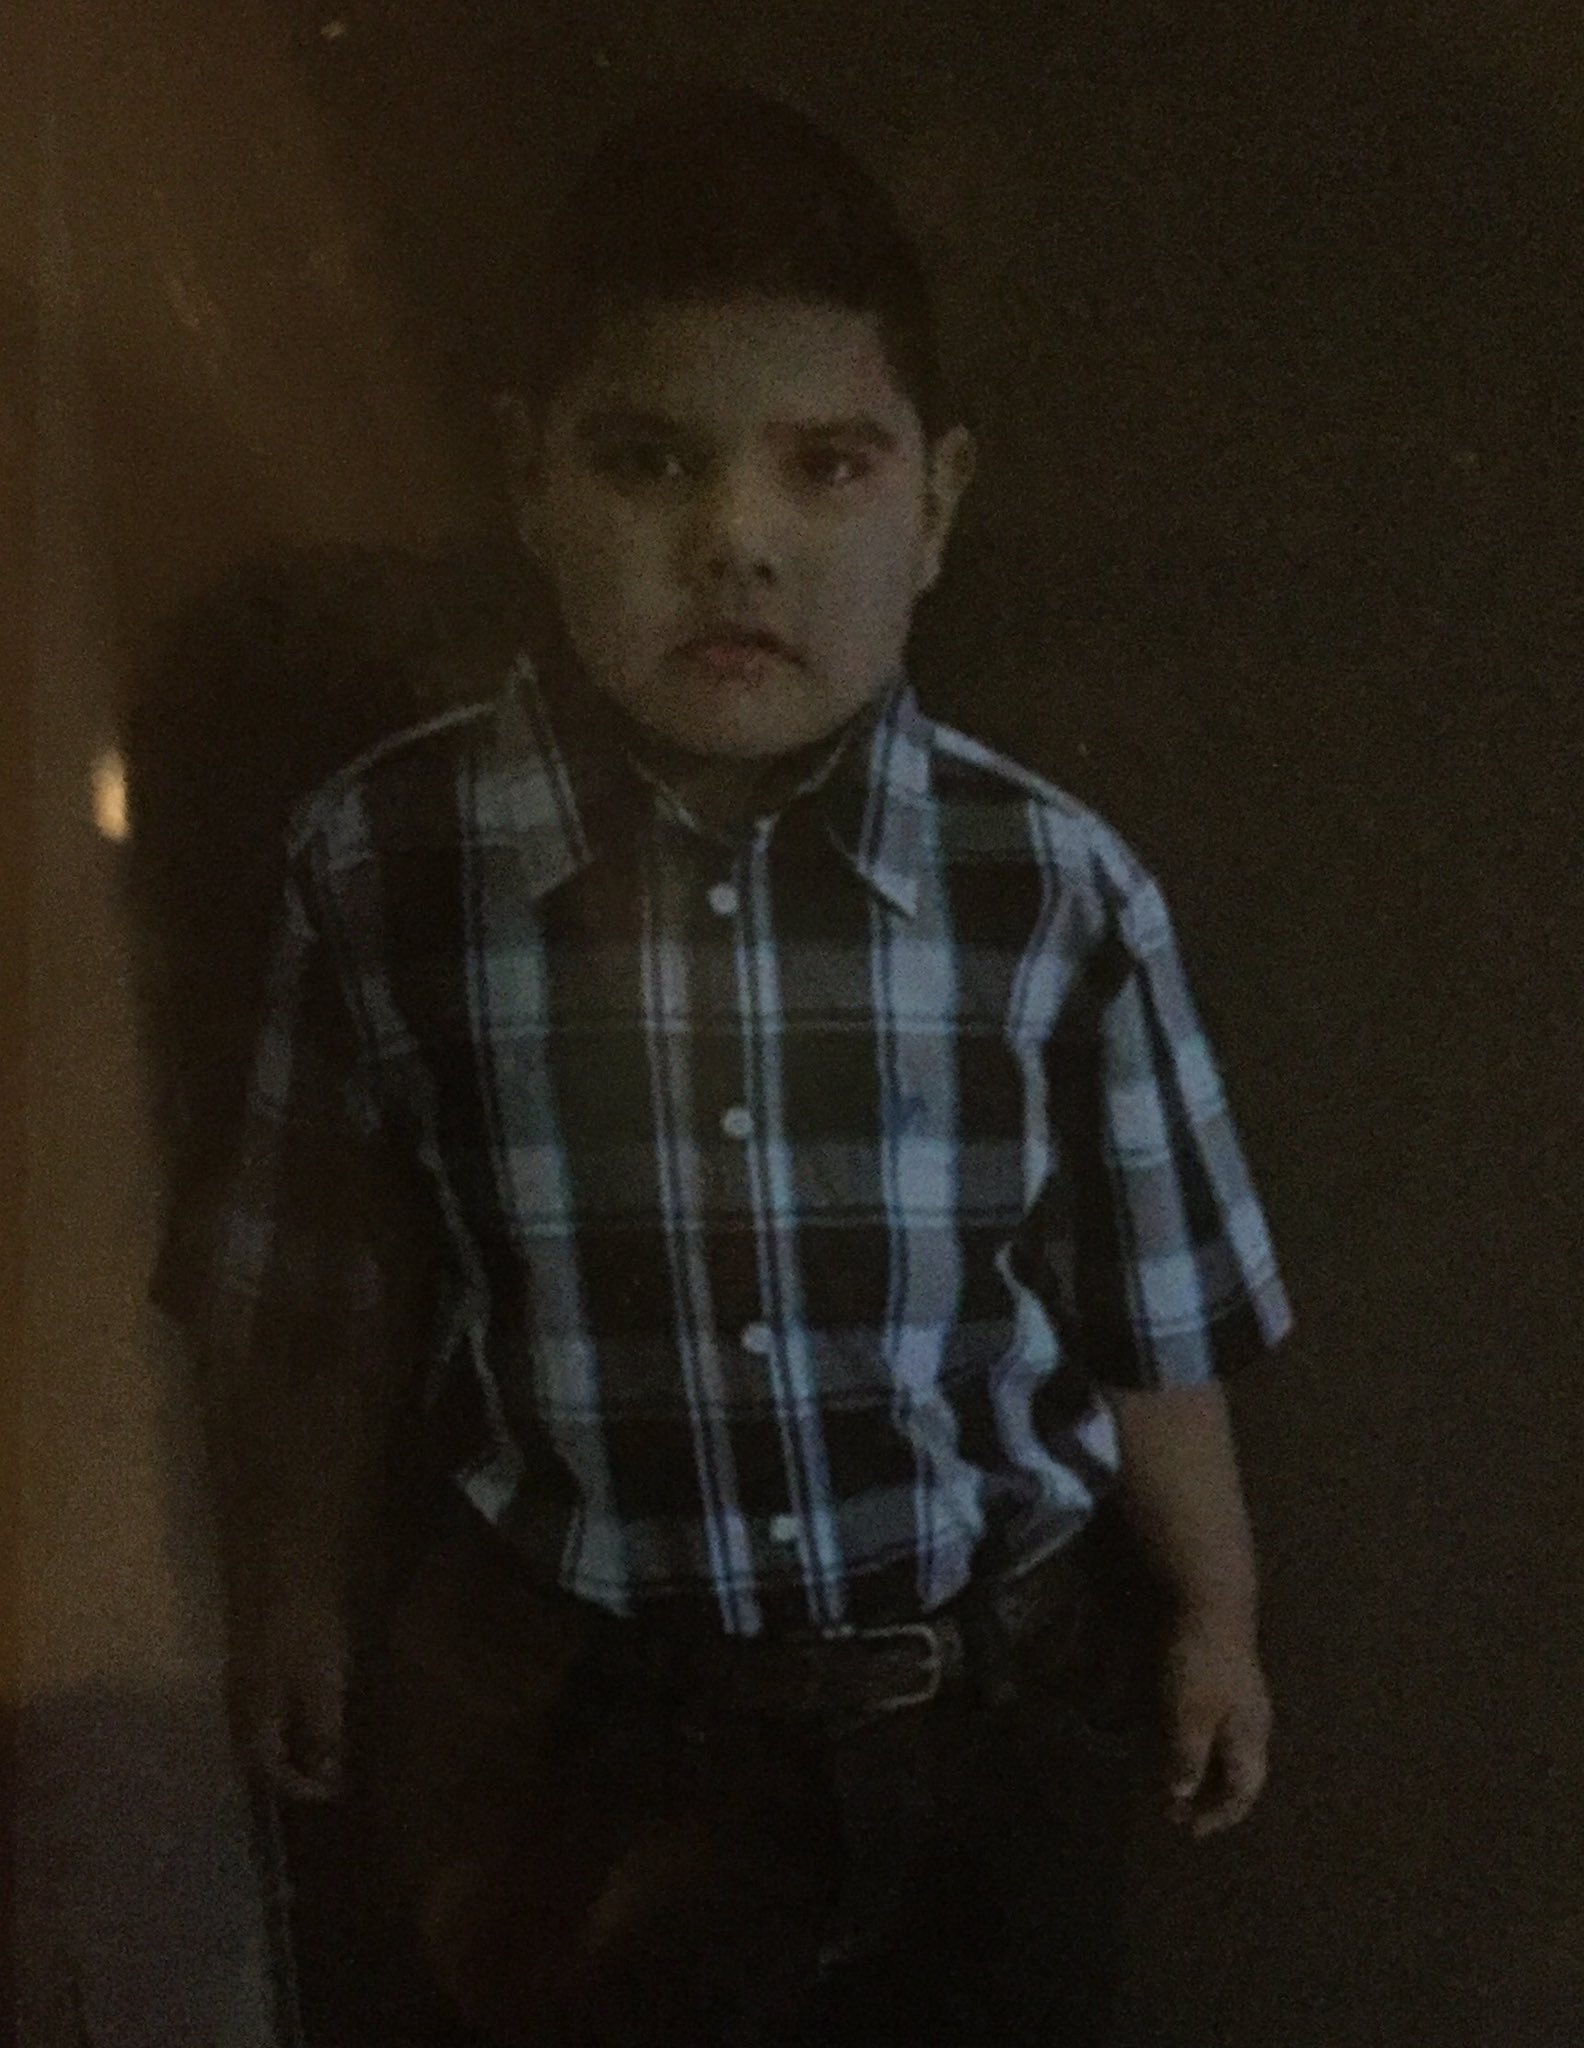 Family members say Joel was one of three children under the age of 5 who were home during the shooting. (KCTV5)